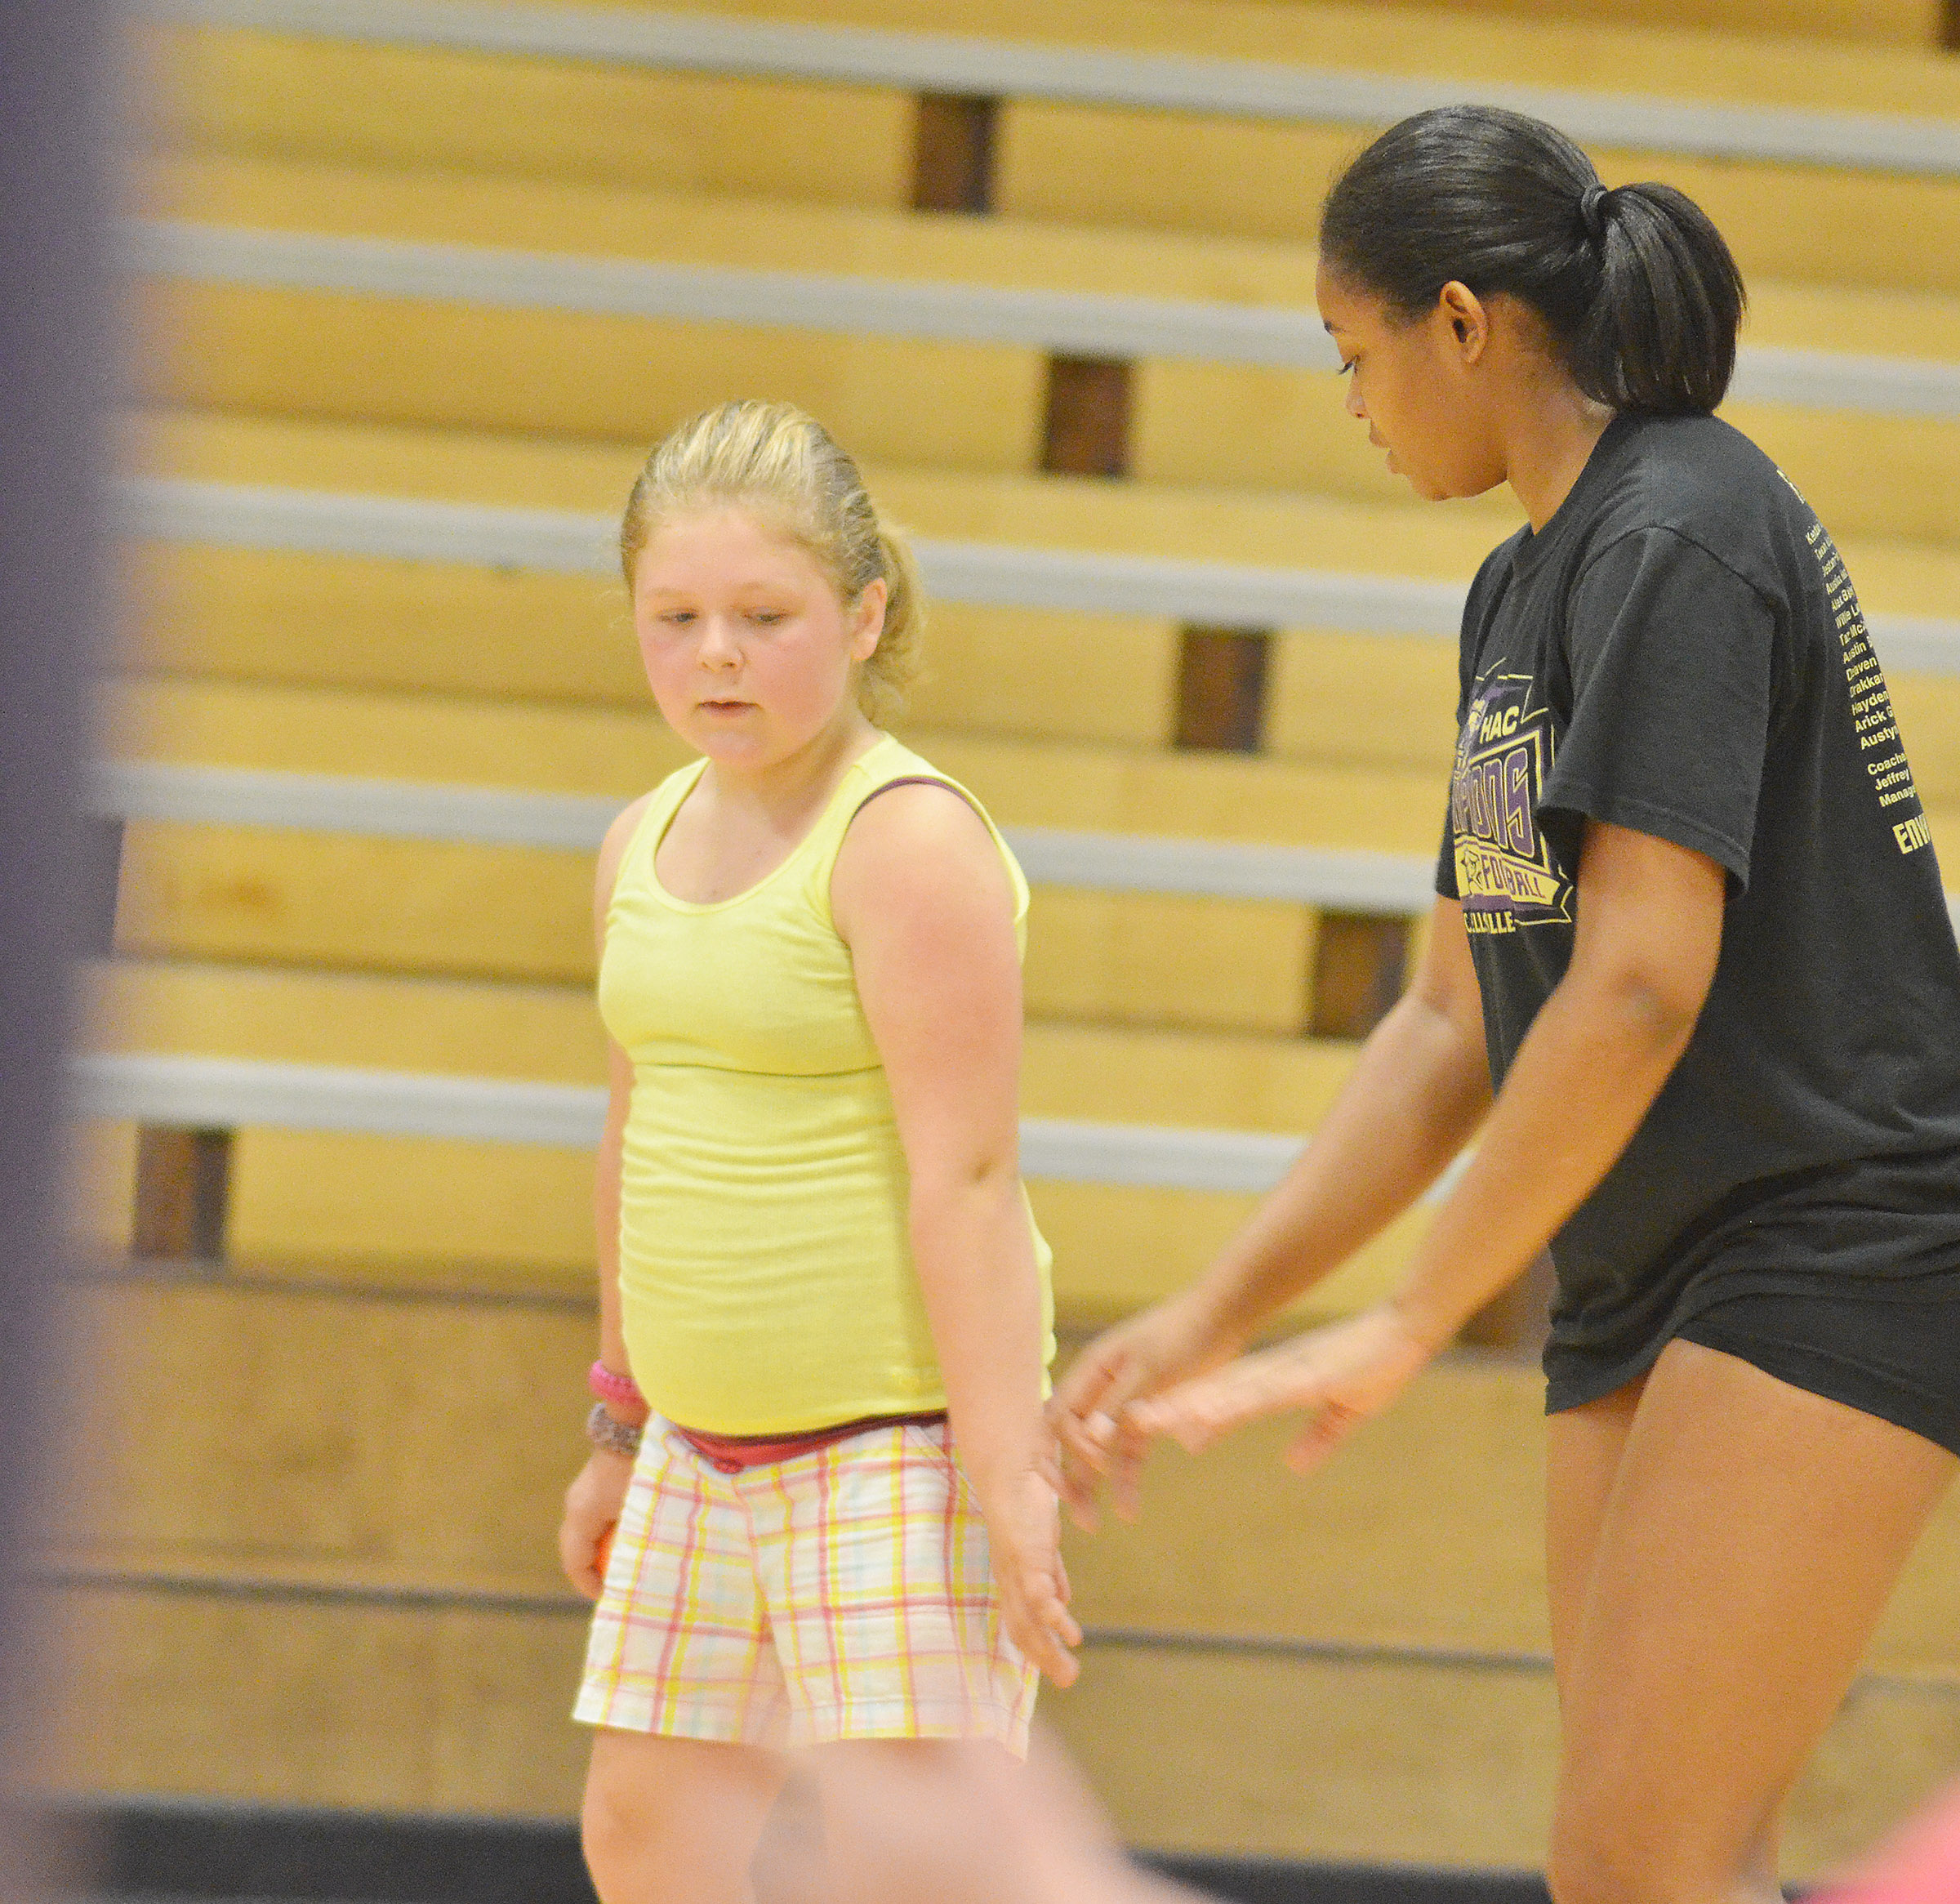 CHS senior Vonnea Smith helps CMS sixth-grader Alexis Sharp learn how to jump and hit the ball.